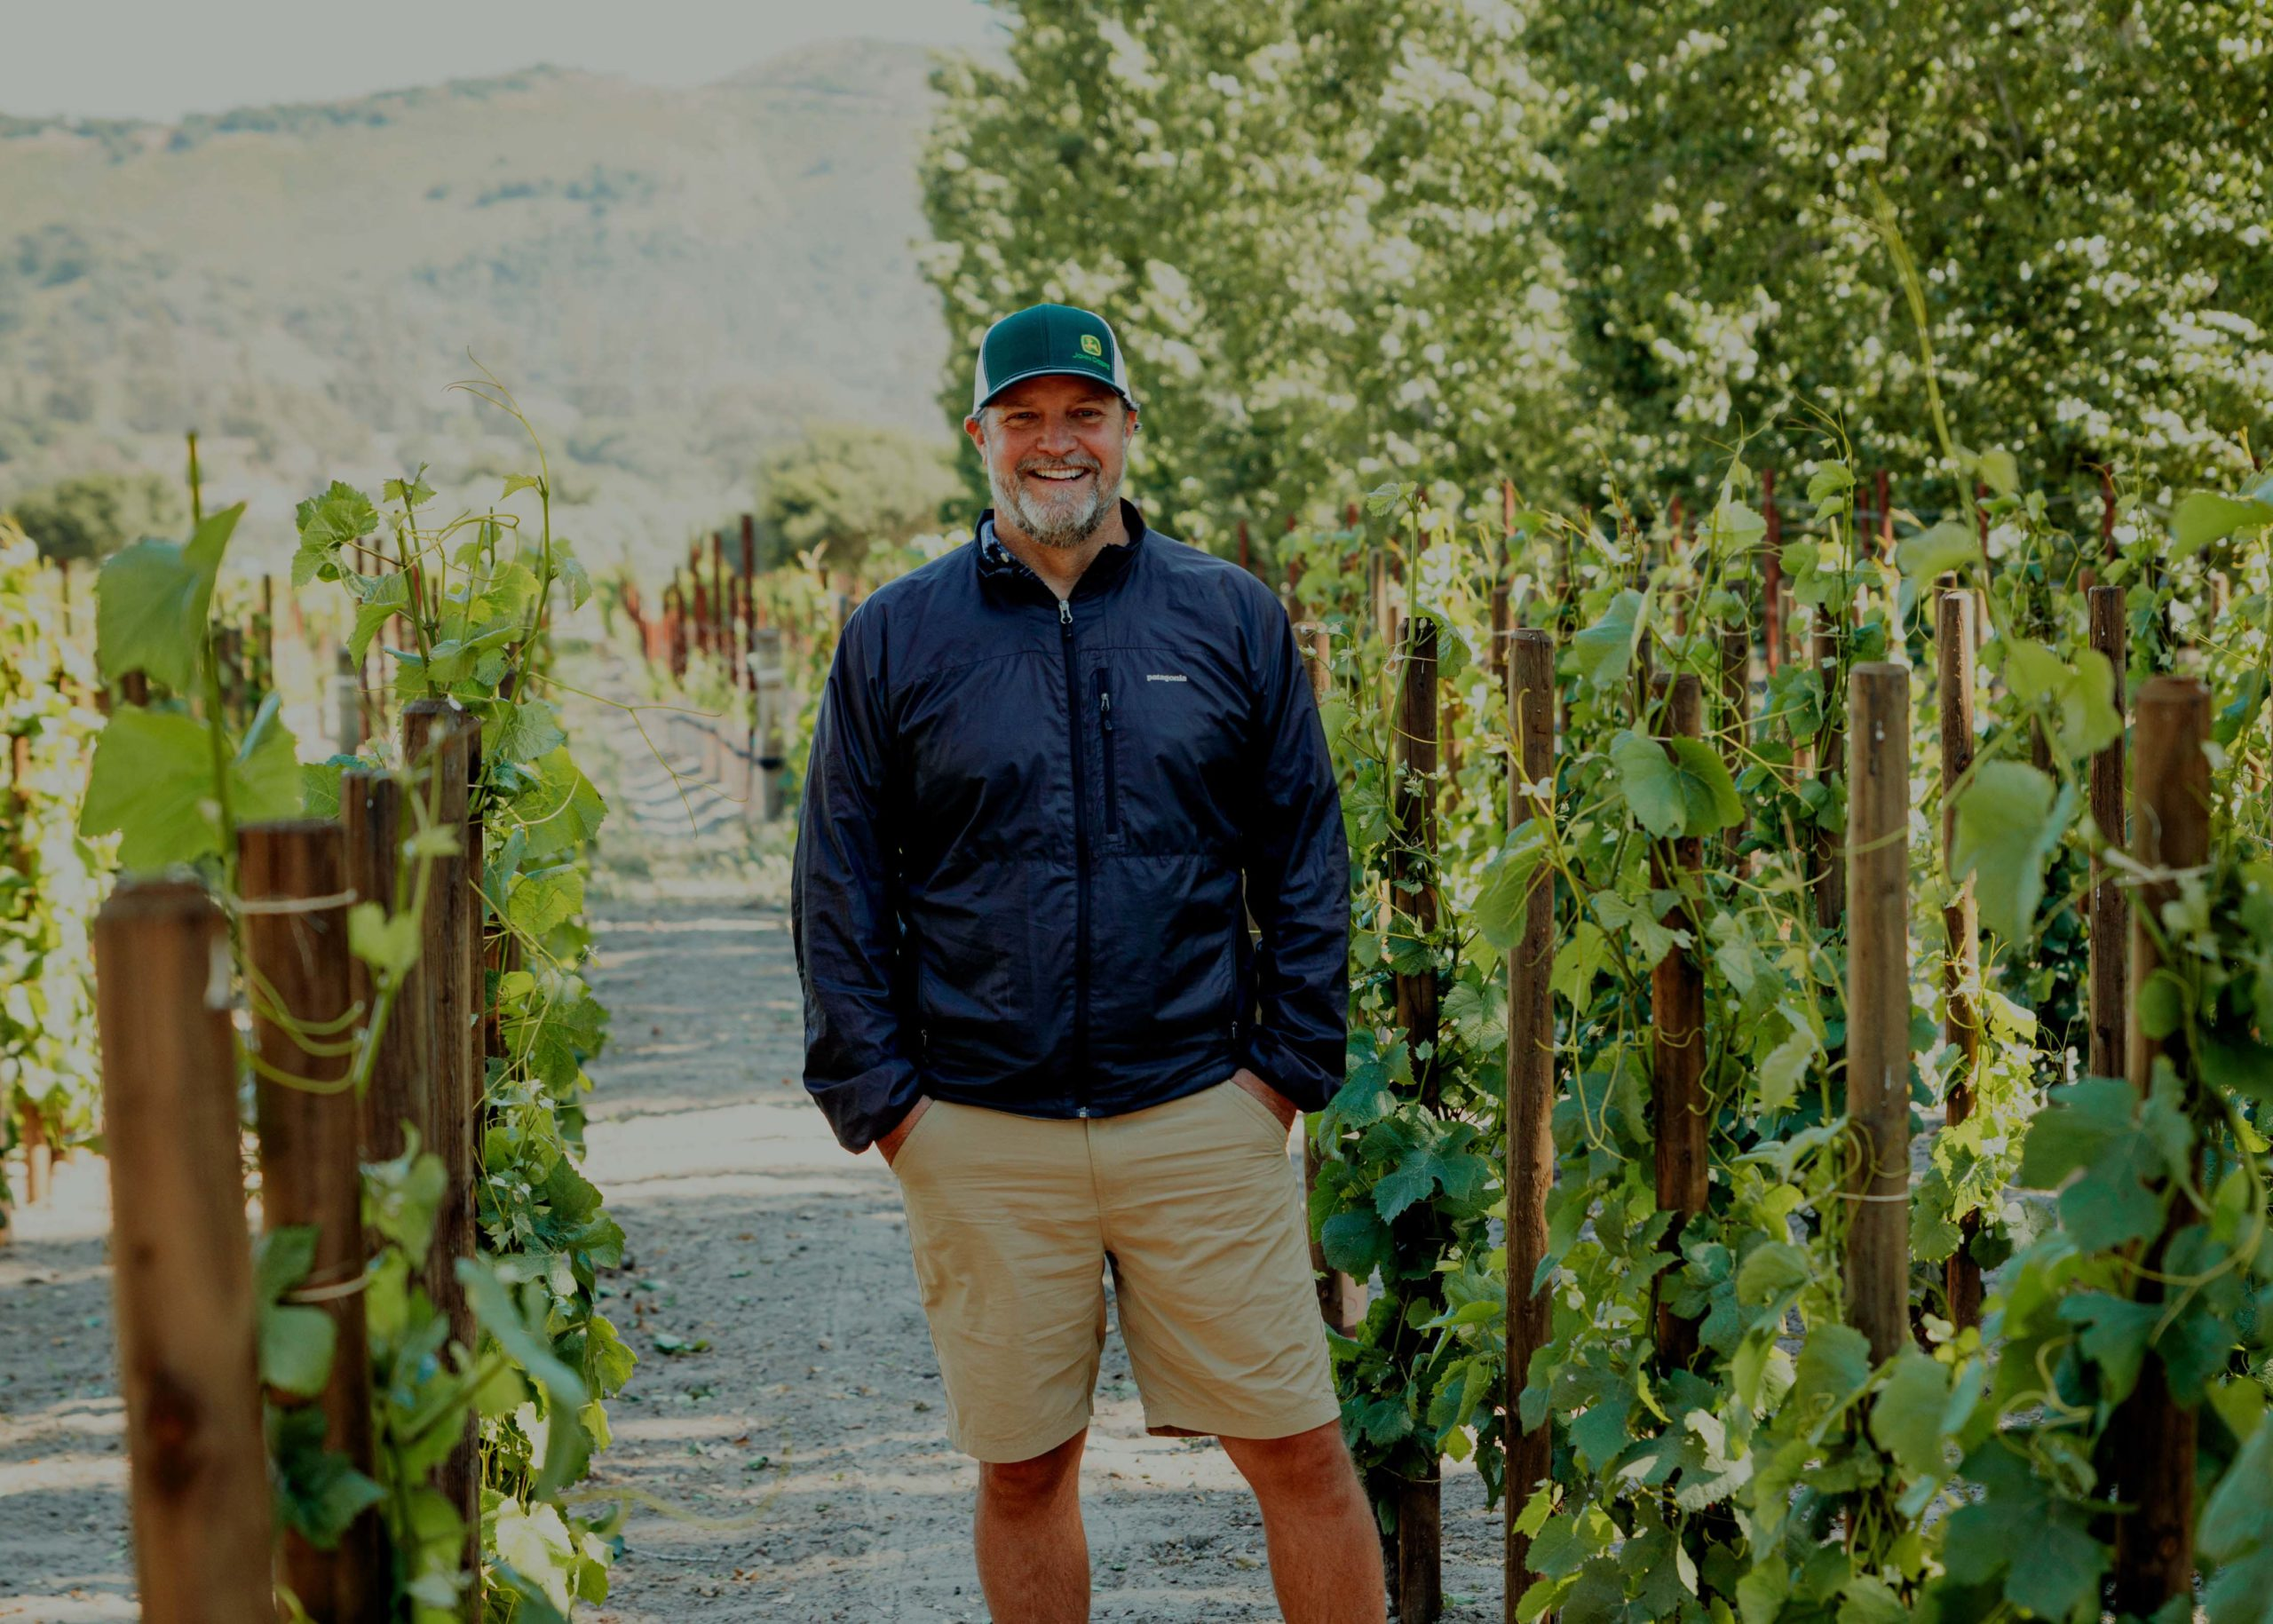 Q&A with Chad Melville, Co-Founder and Head Winegrower, Melville Winery (Sta. Rita Hills, CA)